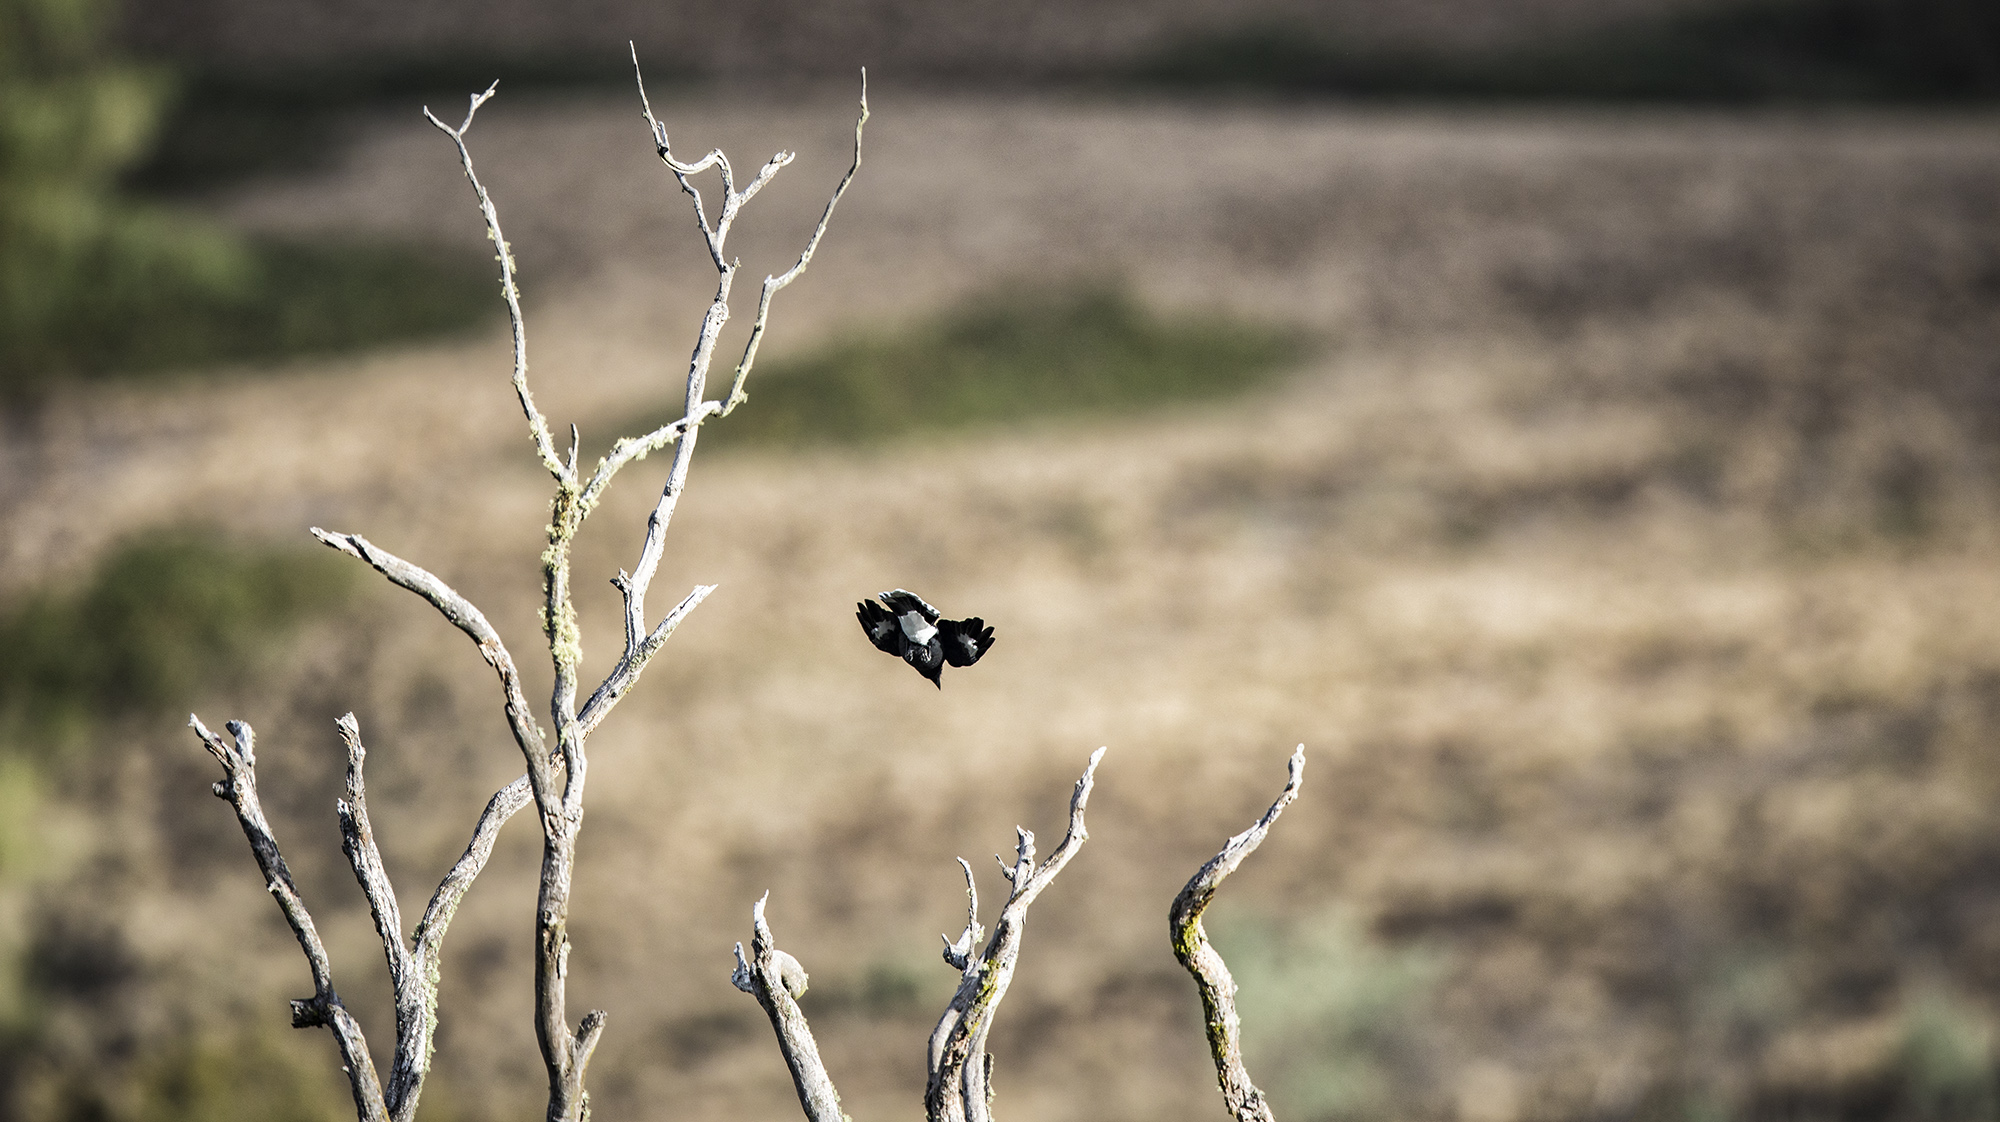 Pied_Currawong_2.jpg